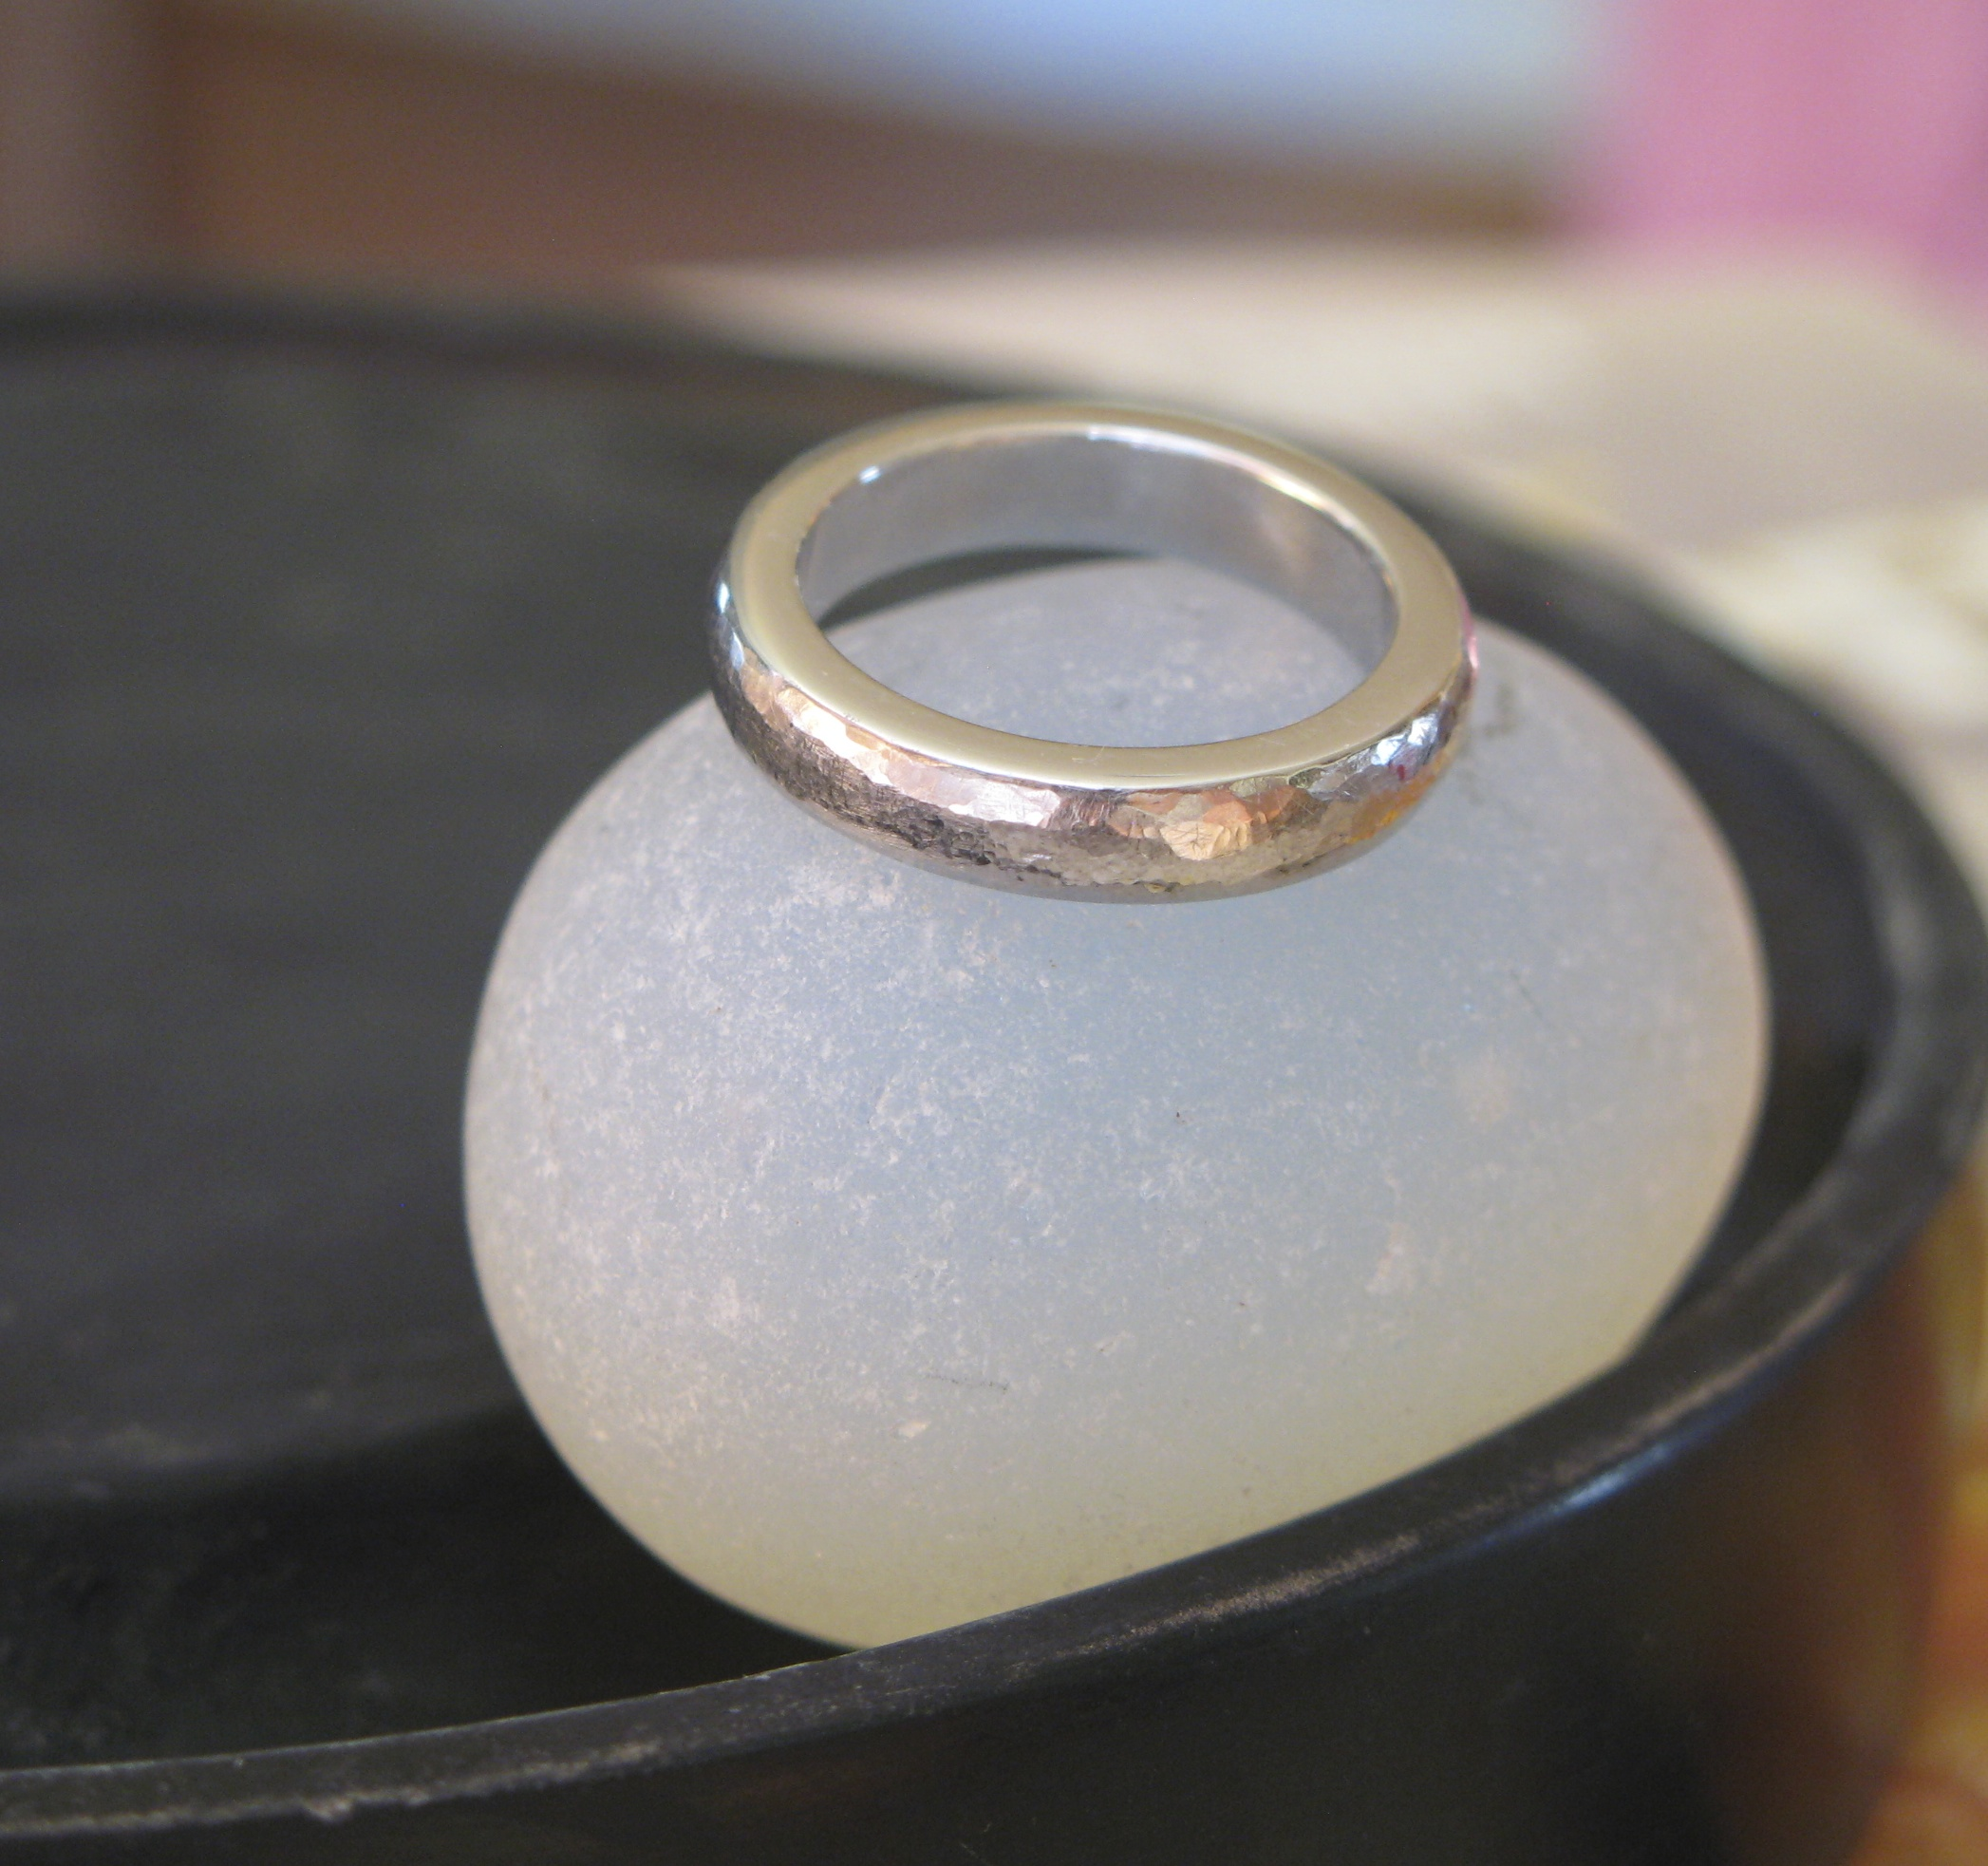 This is a custom platinum wedding band, hand forged. It has a satisfying weight, and lovely hand pounded texture.